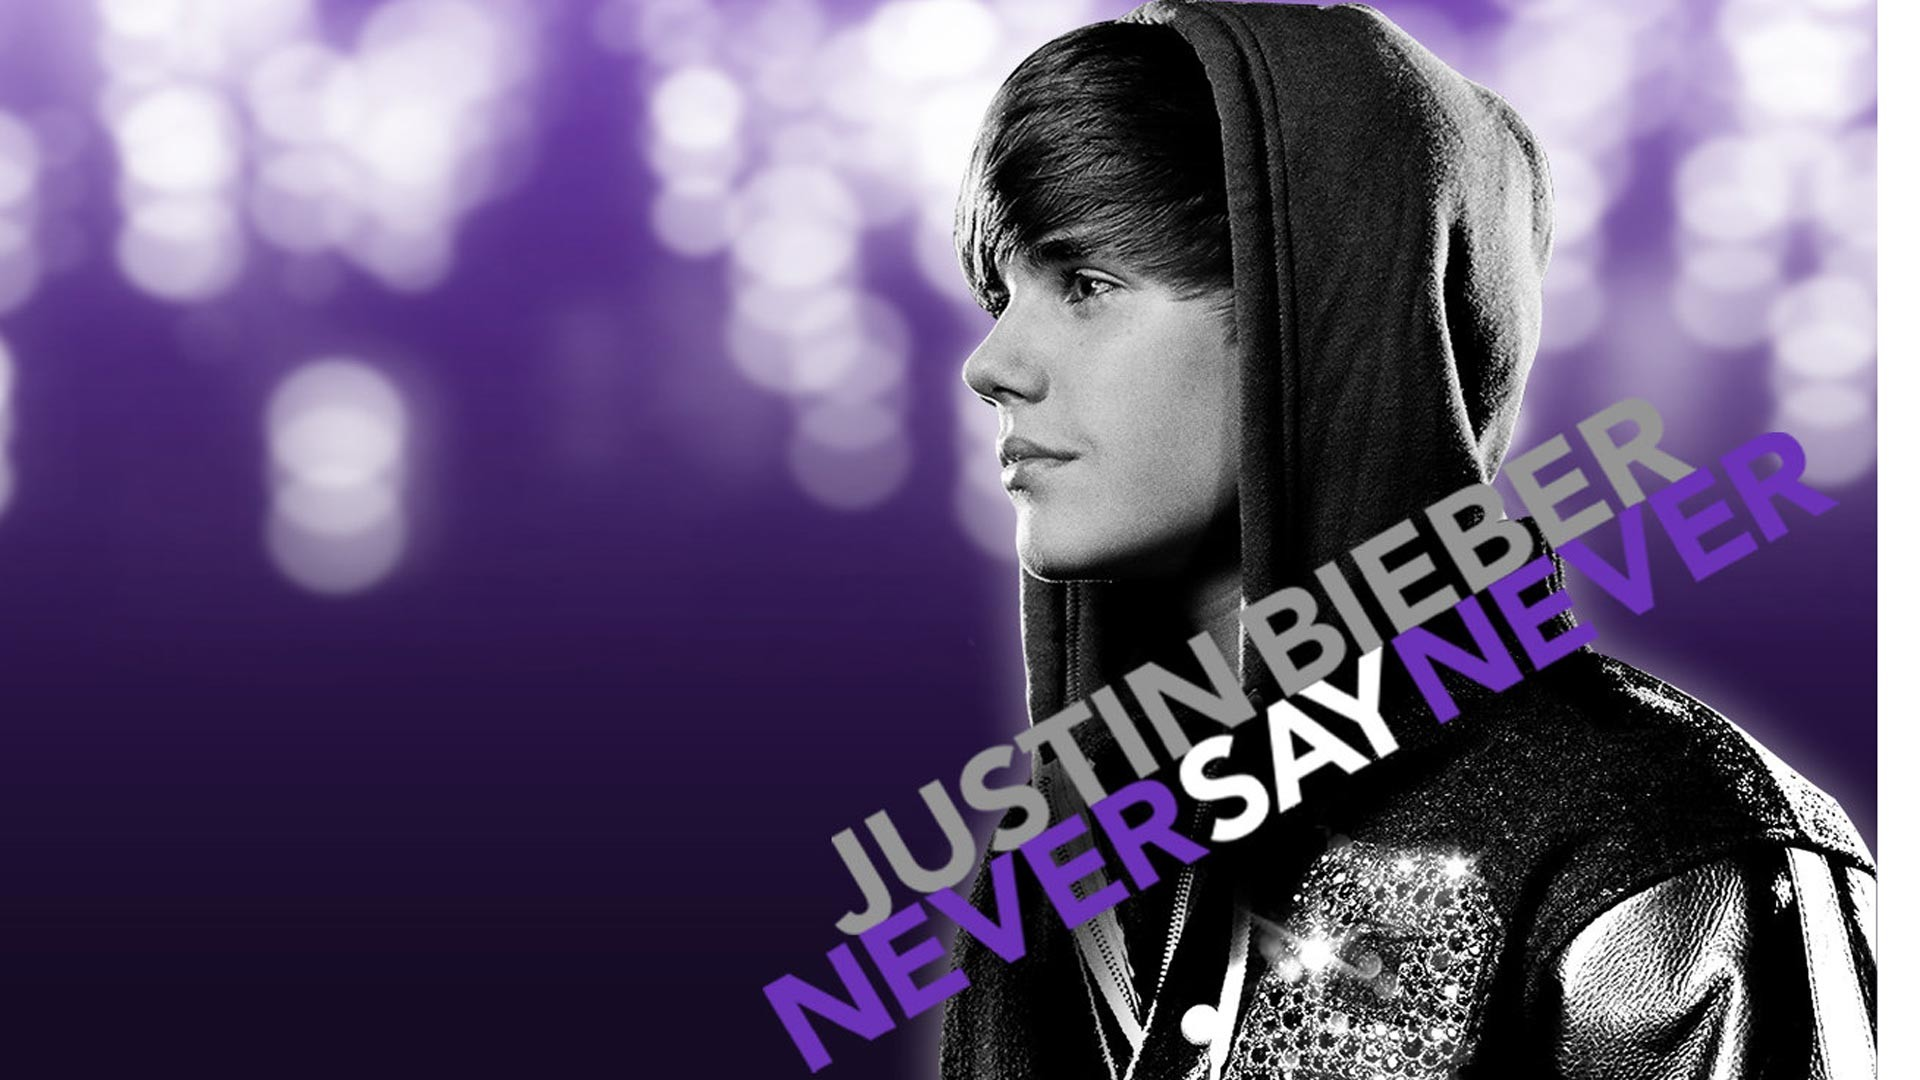 1920x1080 Justin Bieber wallpapers never say never